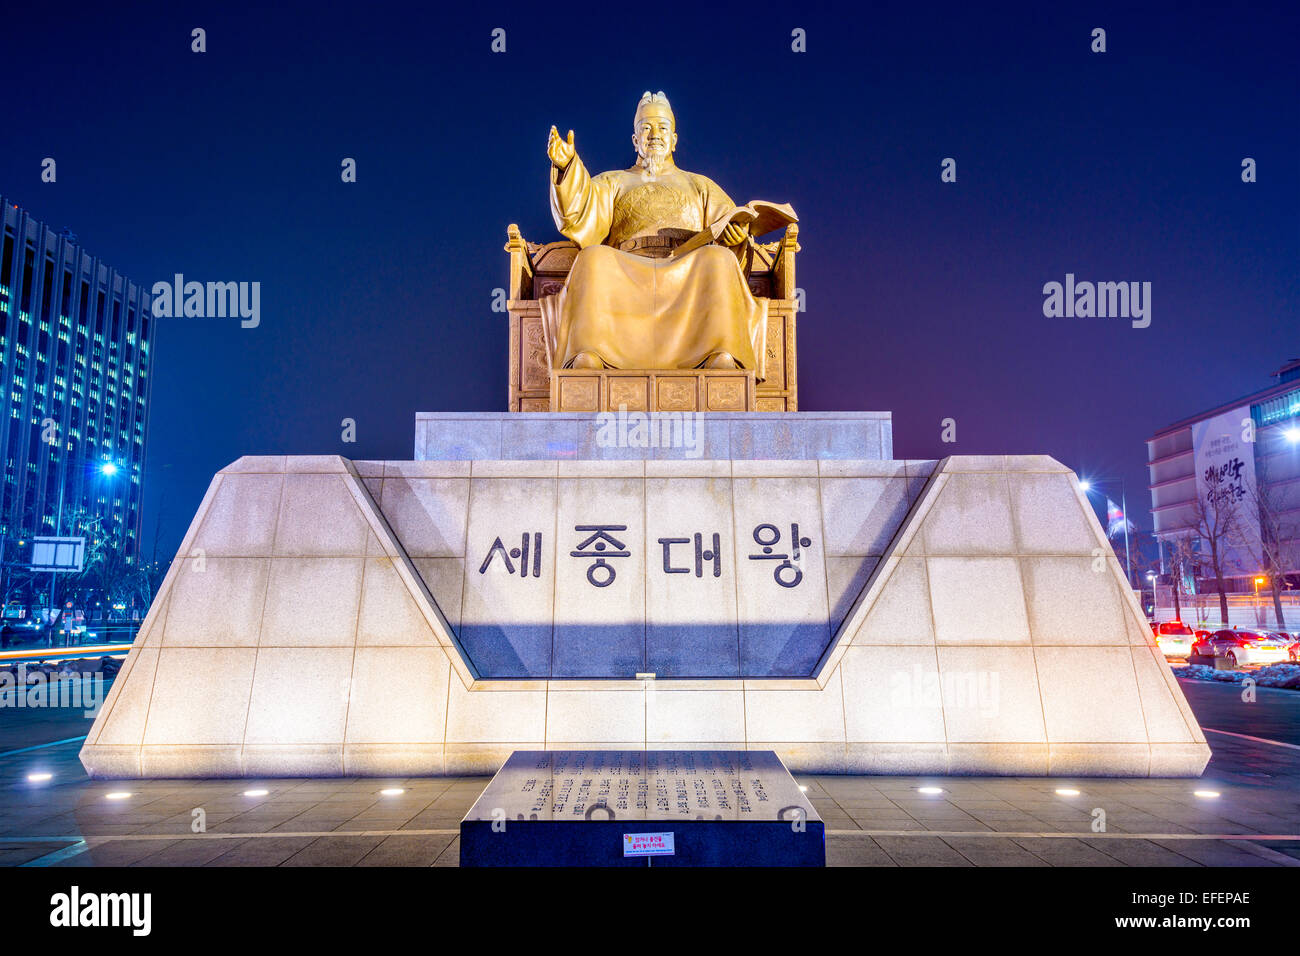 Statue du Roi Sejong Gwanghwamun au Plaza. Photo Stock